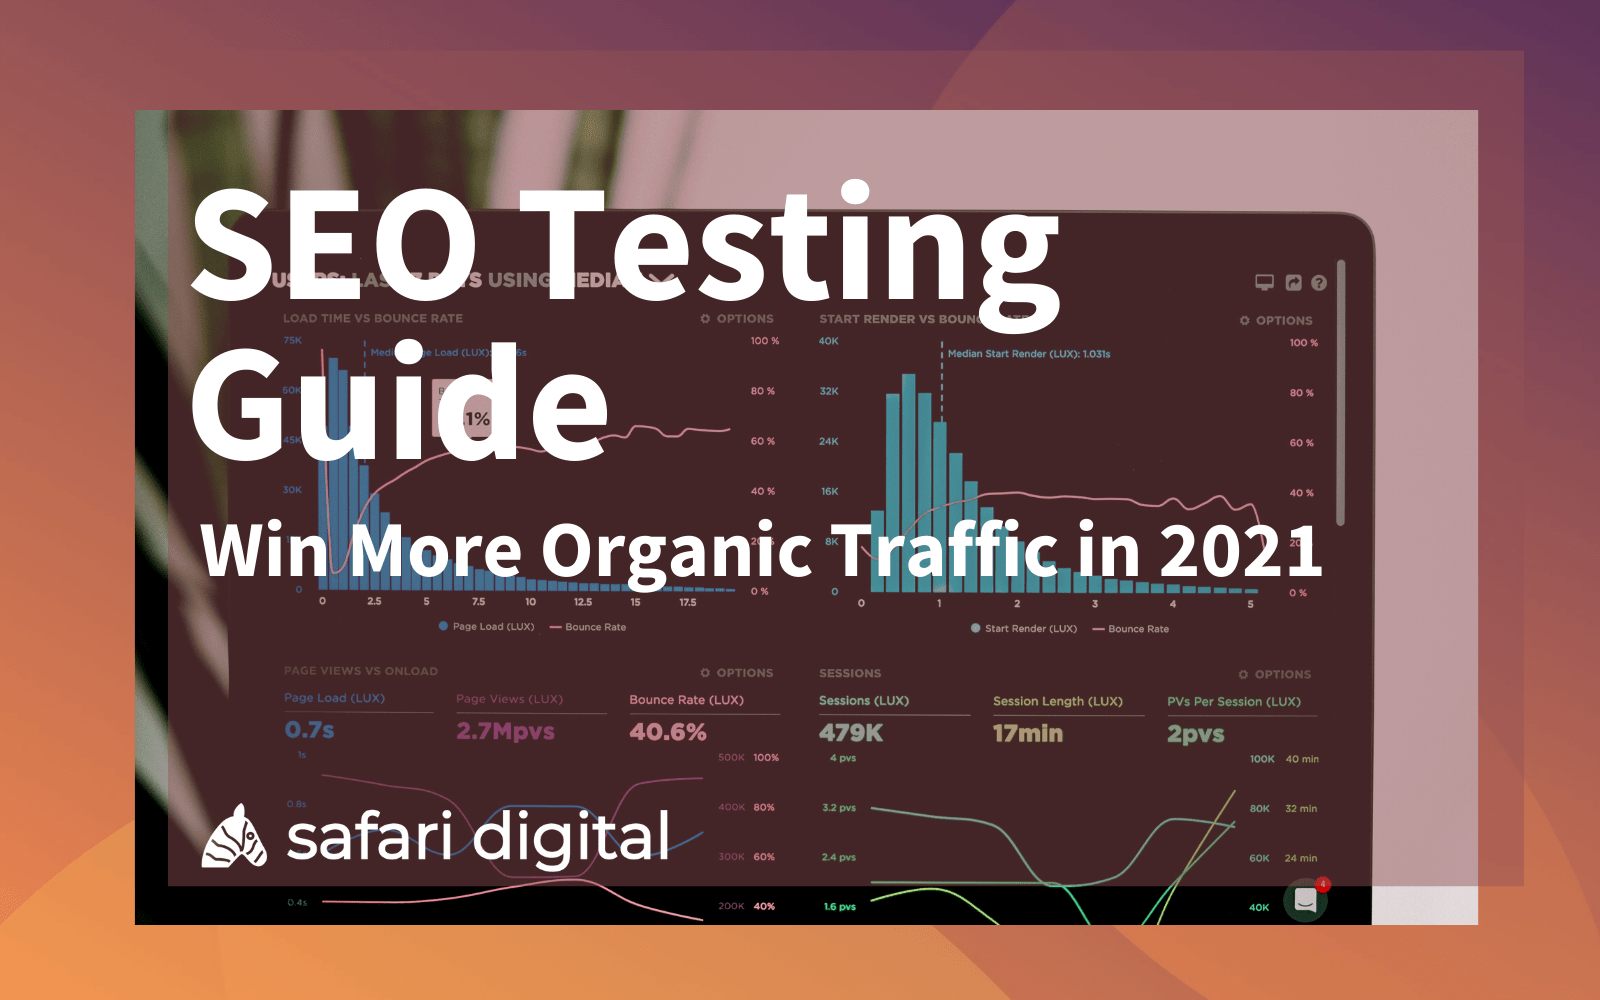 SEO Testing Guide Cover Image